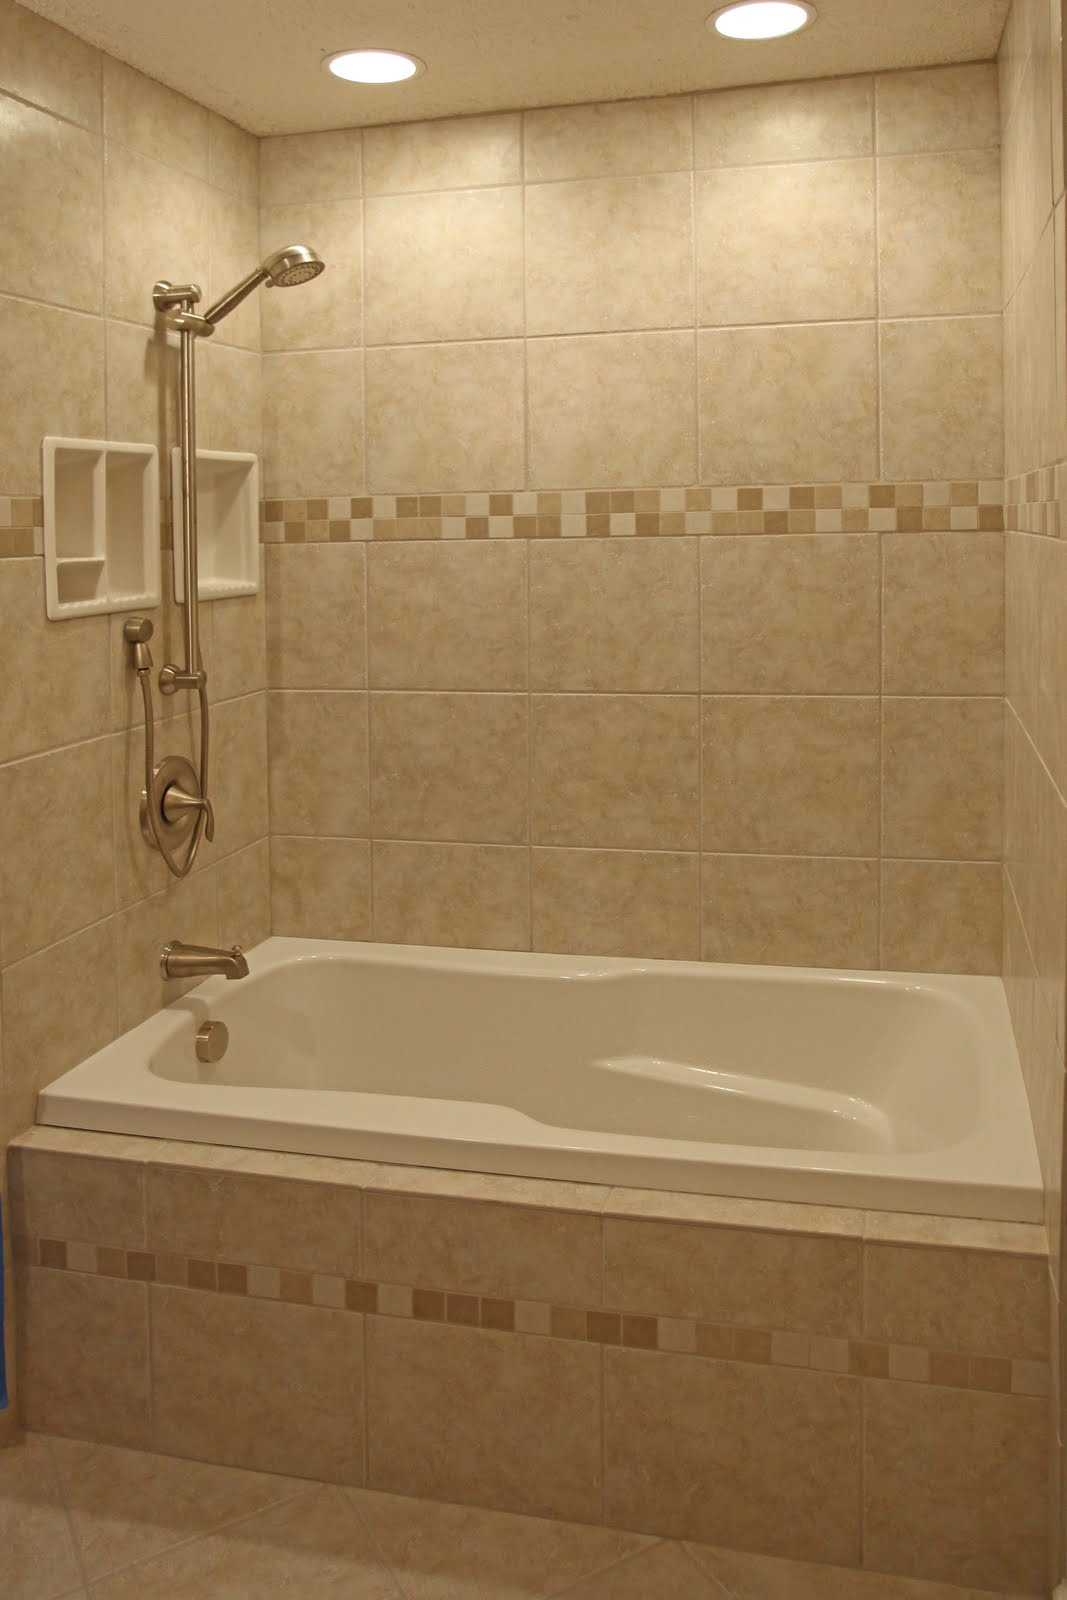 Bathroom remodeling design ideas tile shower niches for Glass tile bathroom designs